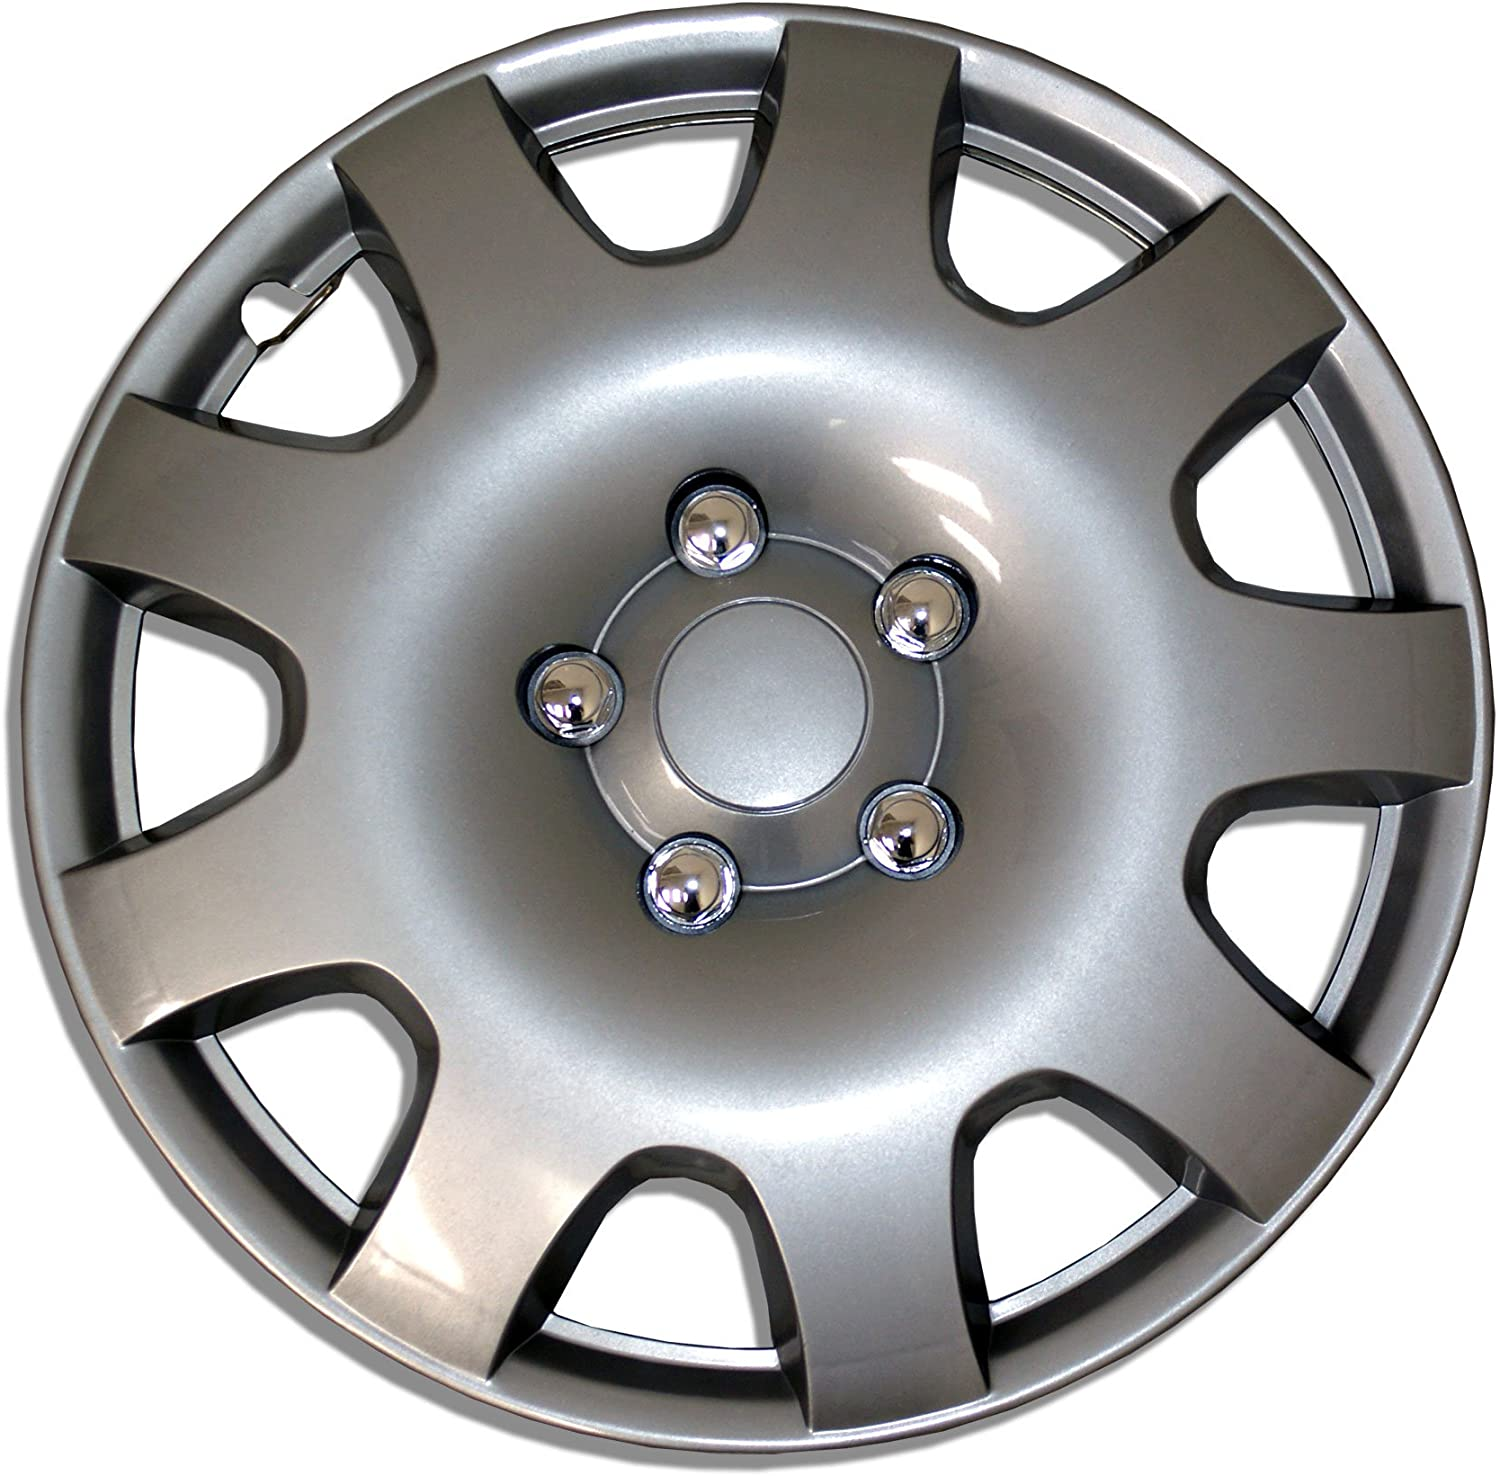 TuningPros WSC-502S16 Hubcaps Wheel Skin Cover 16-Inches Silver Set of 4